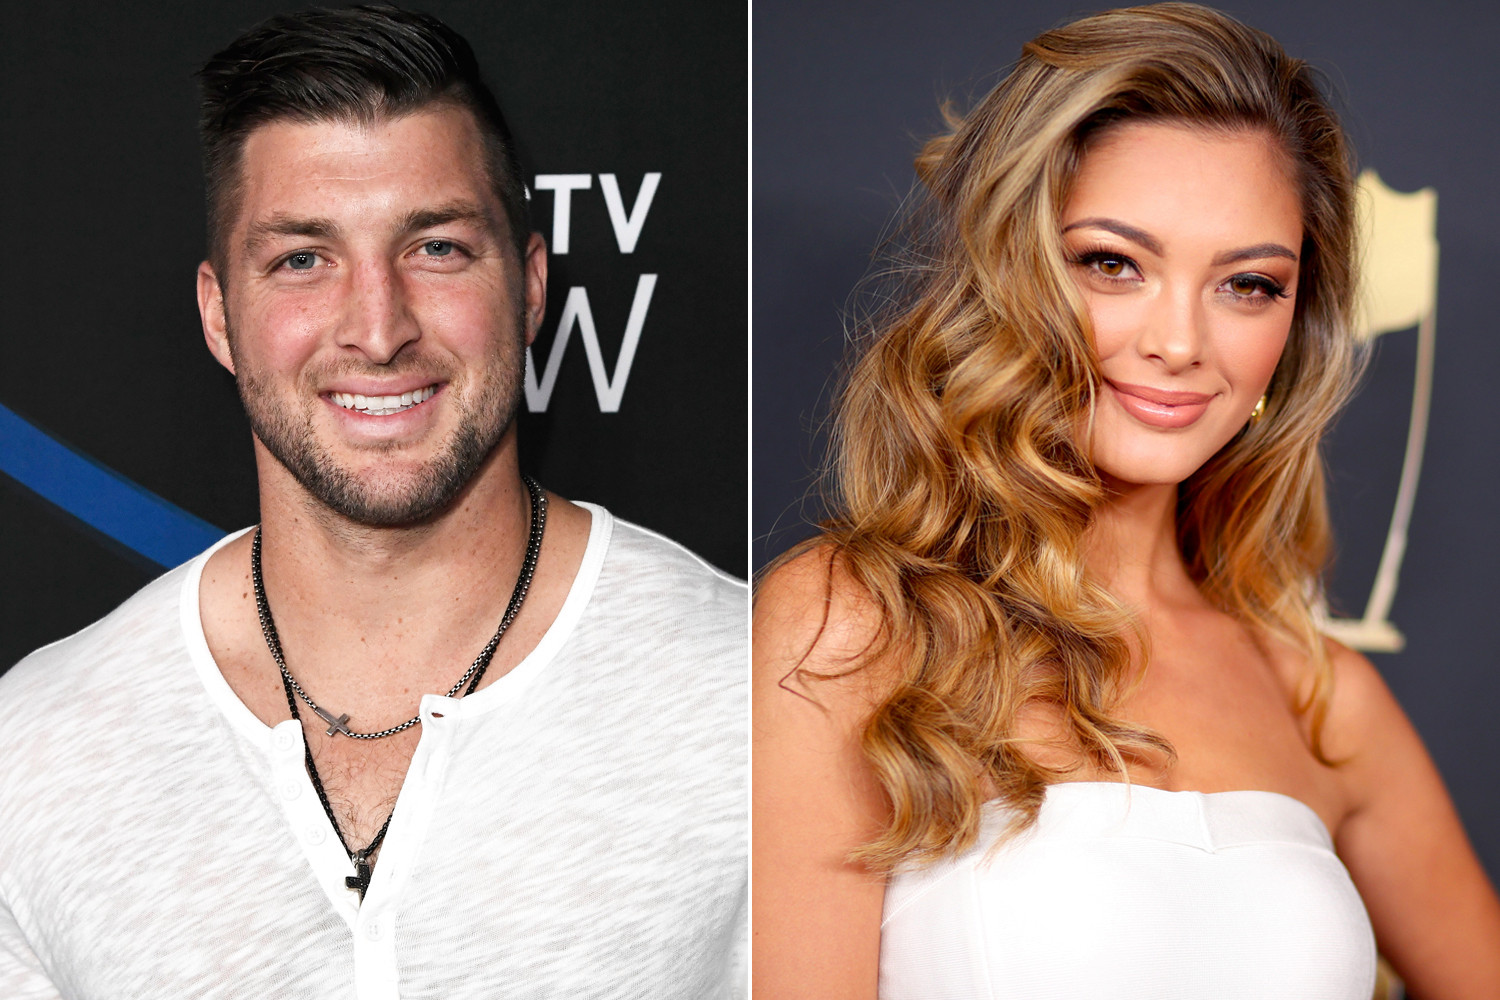 Tim Tebow and his fiancee visit Disney World to celebrate engagement